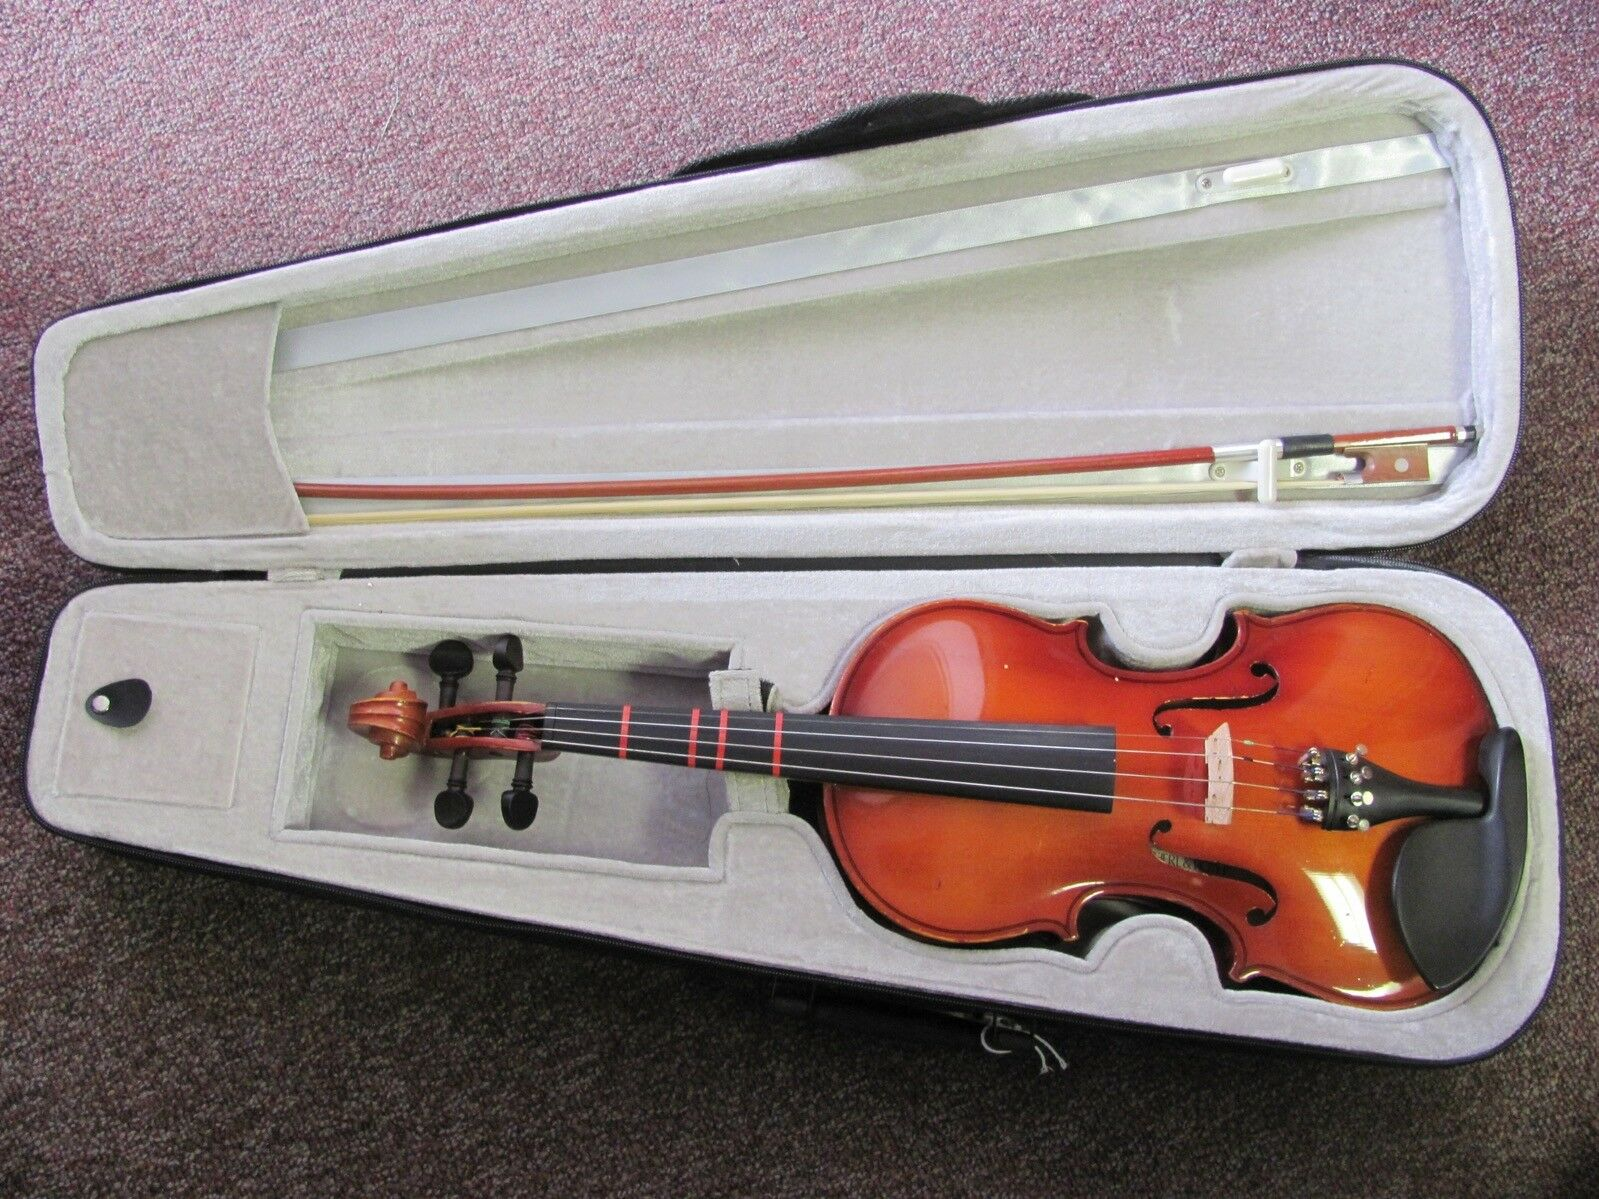 Scherl & Roth Beginner 3/4 Size German Violin, Bow and Case, Model R270E3H